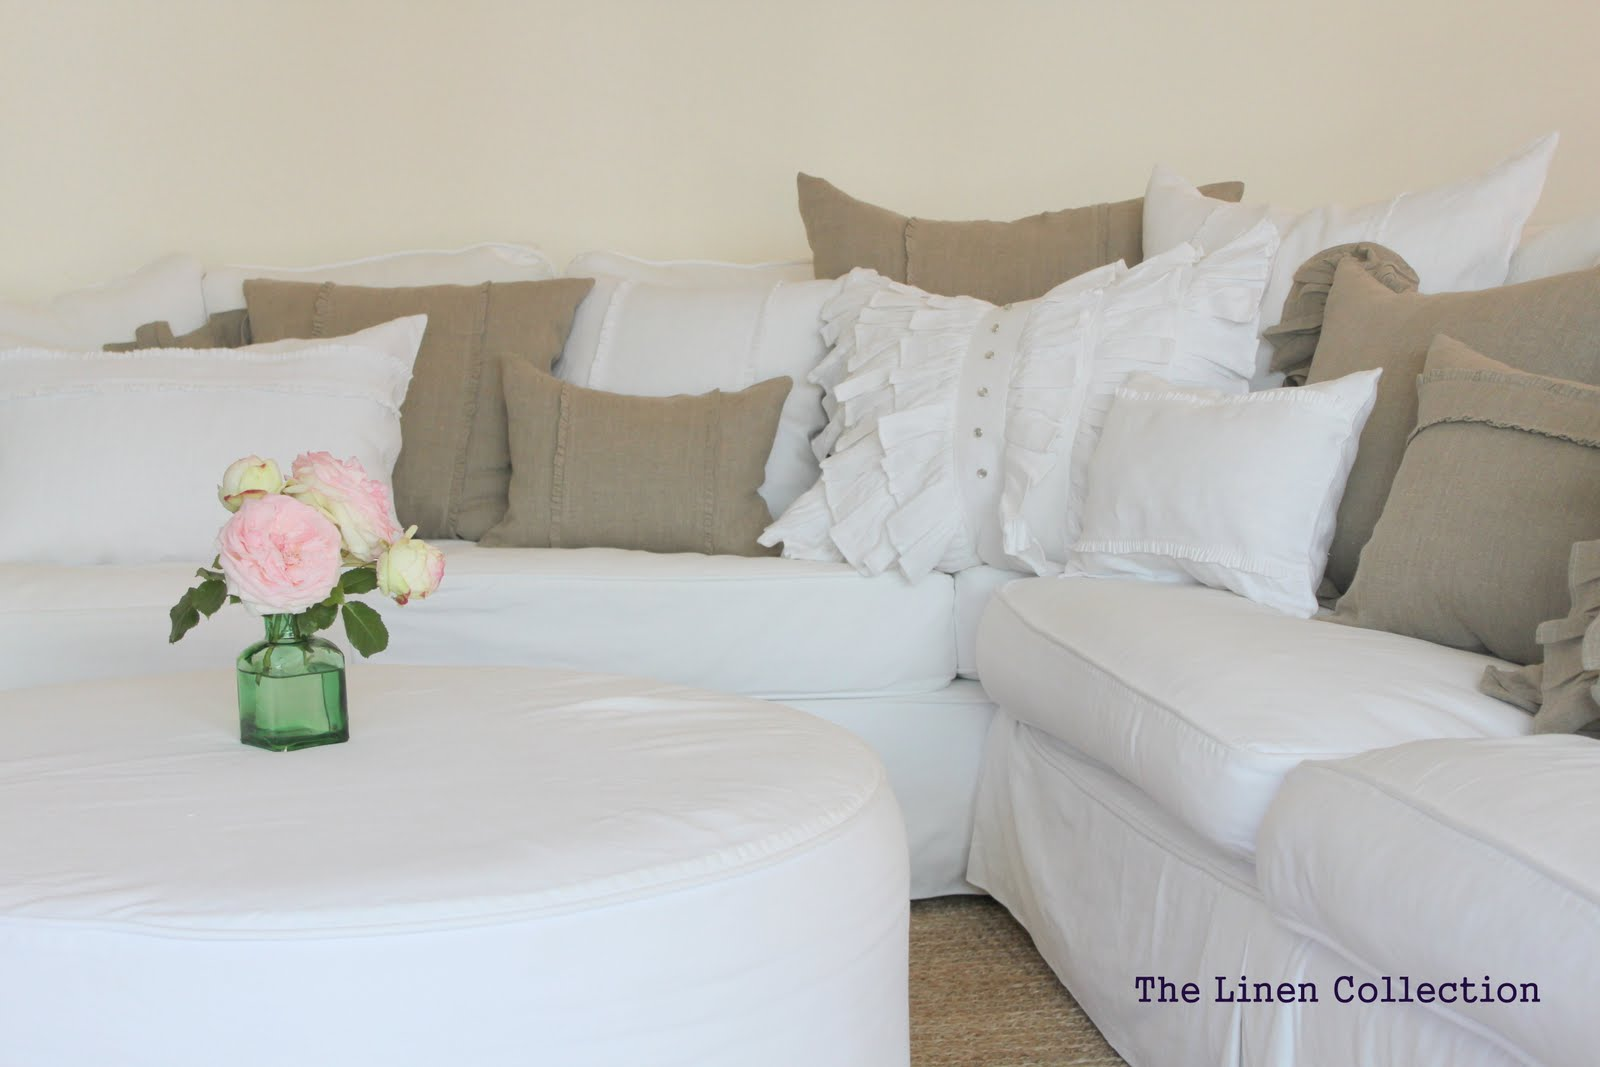 Trish, Collection of linen pillows in various sizes and design details. Simple color palette of natural fla...